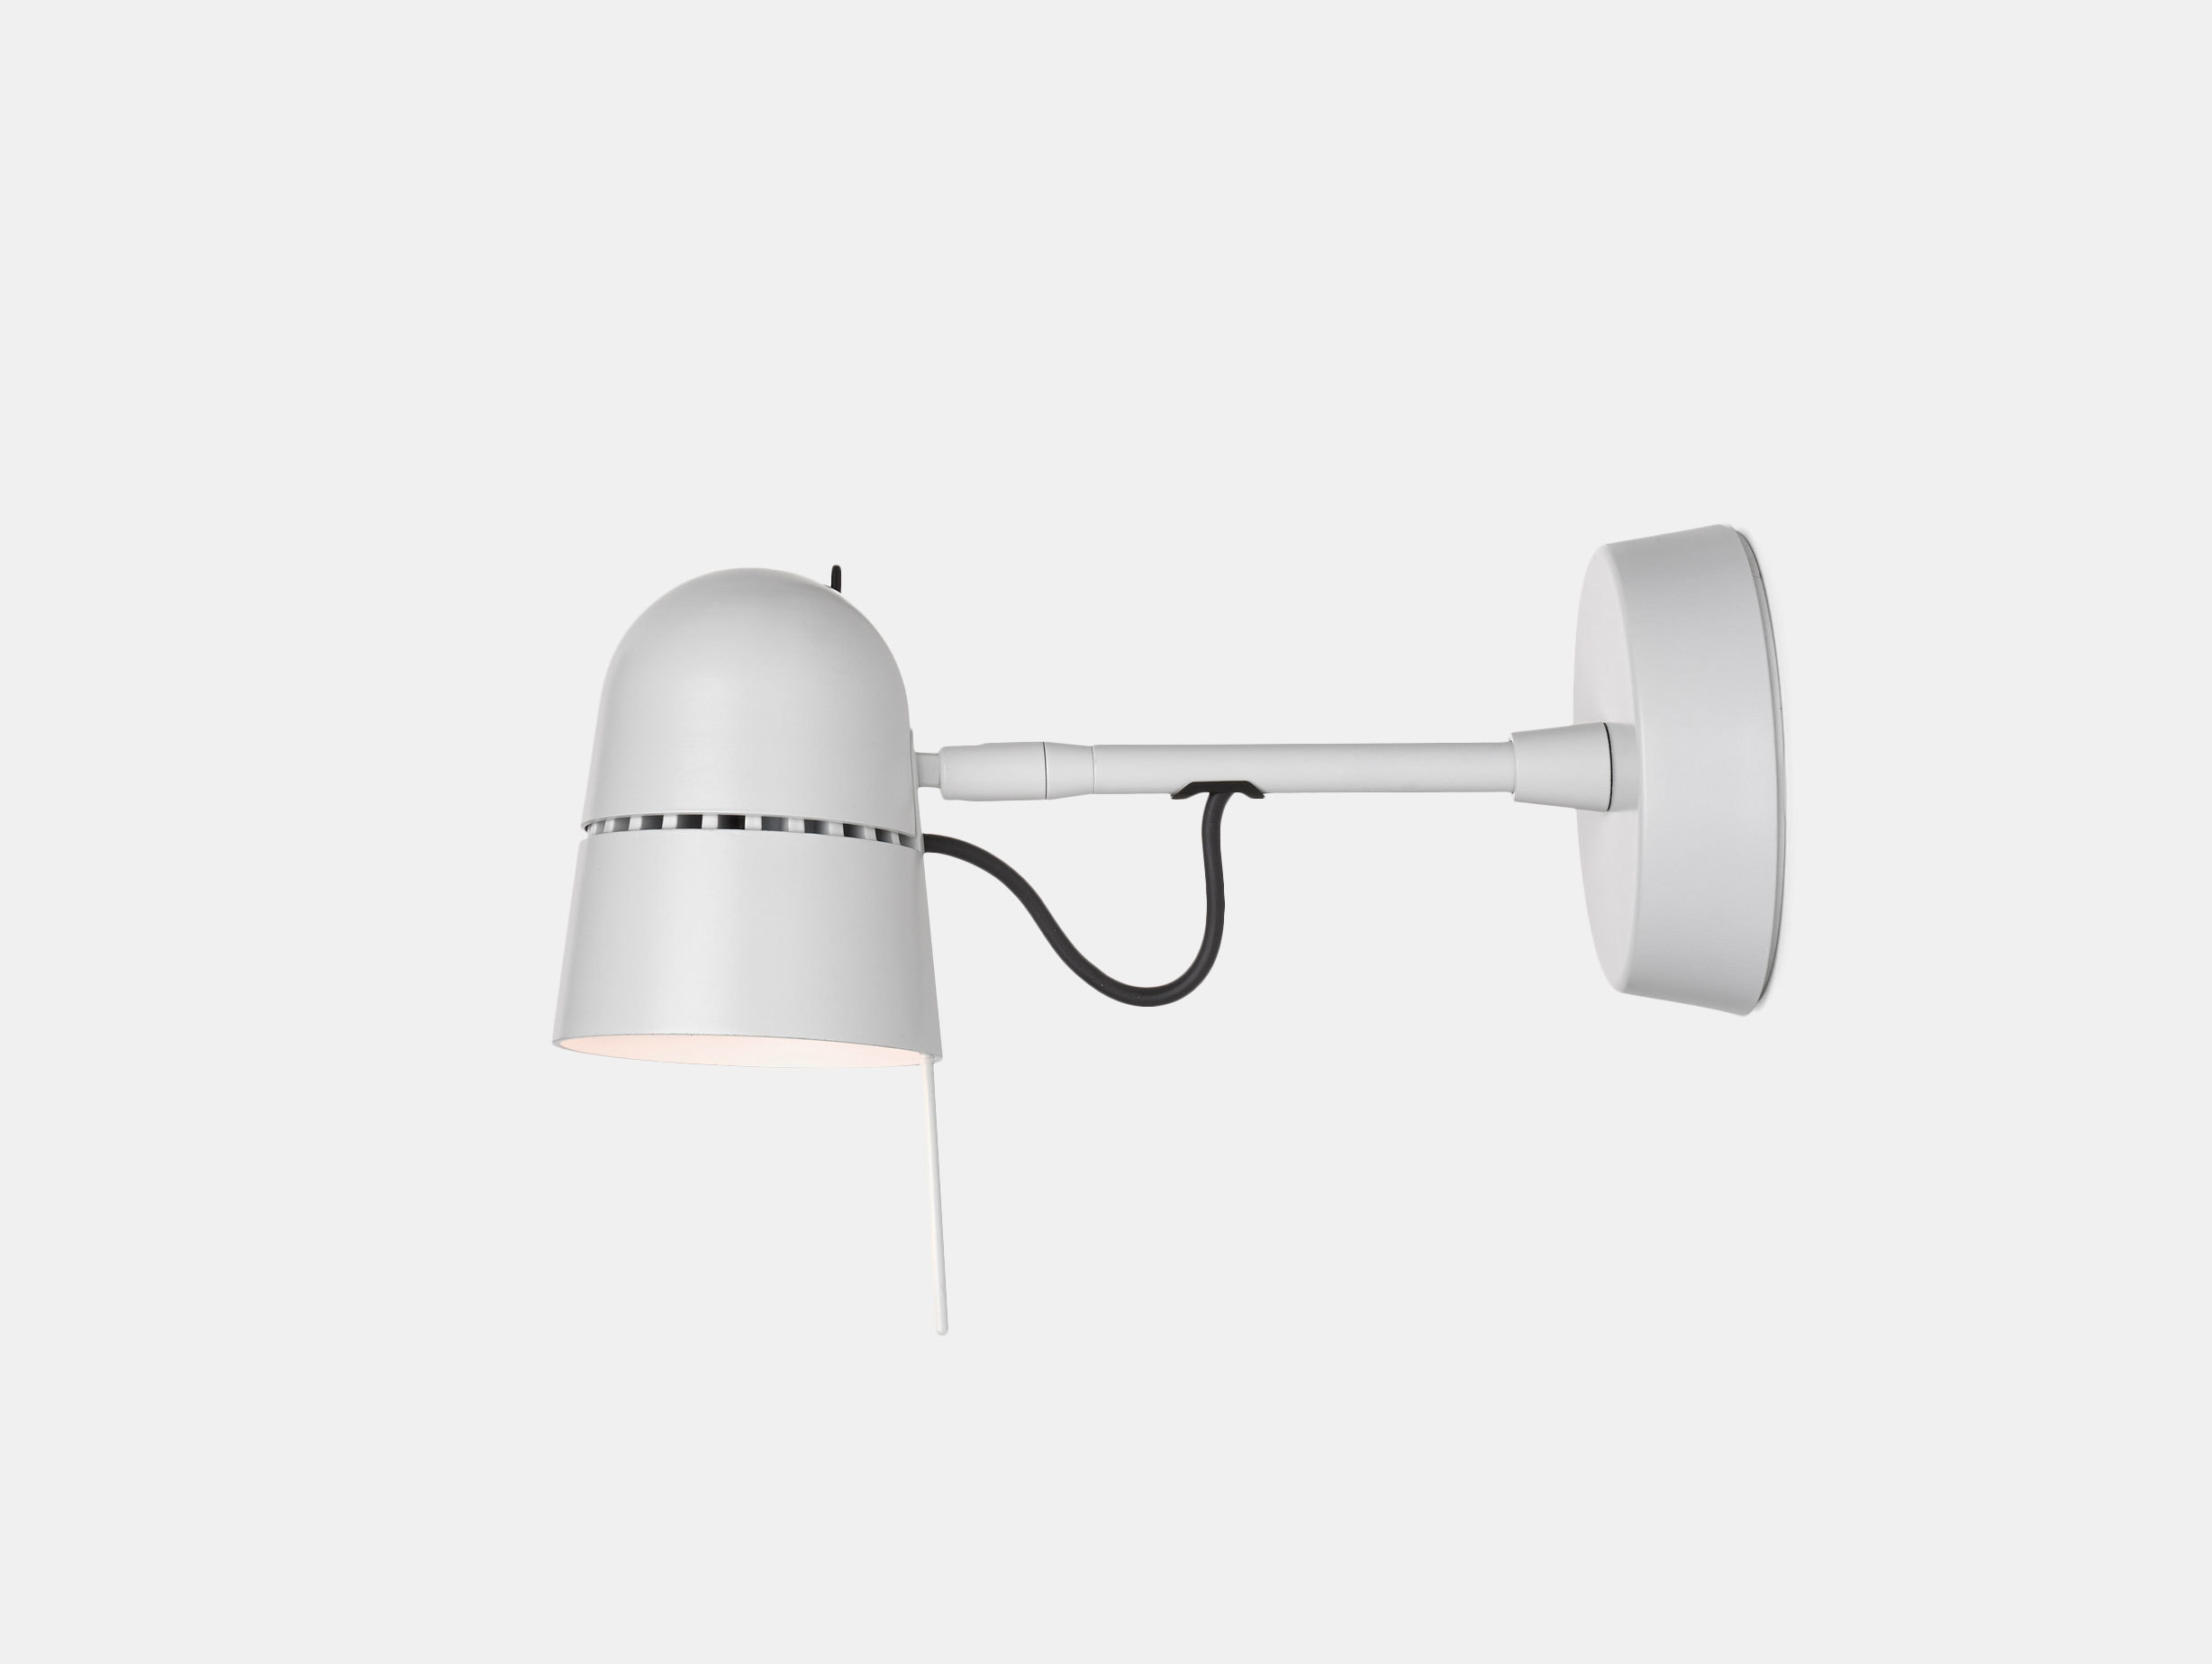 Counterbalance Spot Wall Light image 1